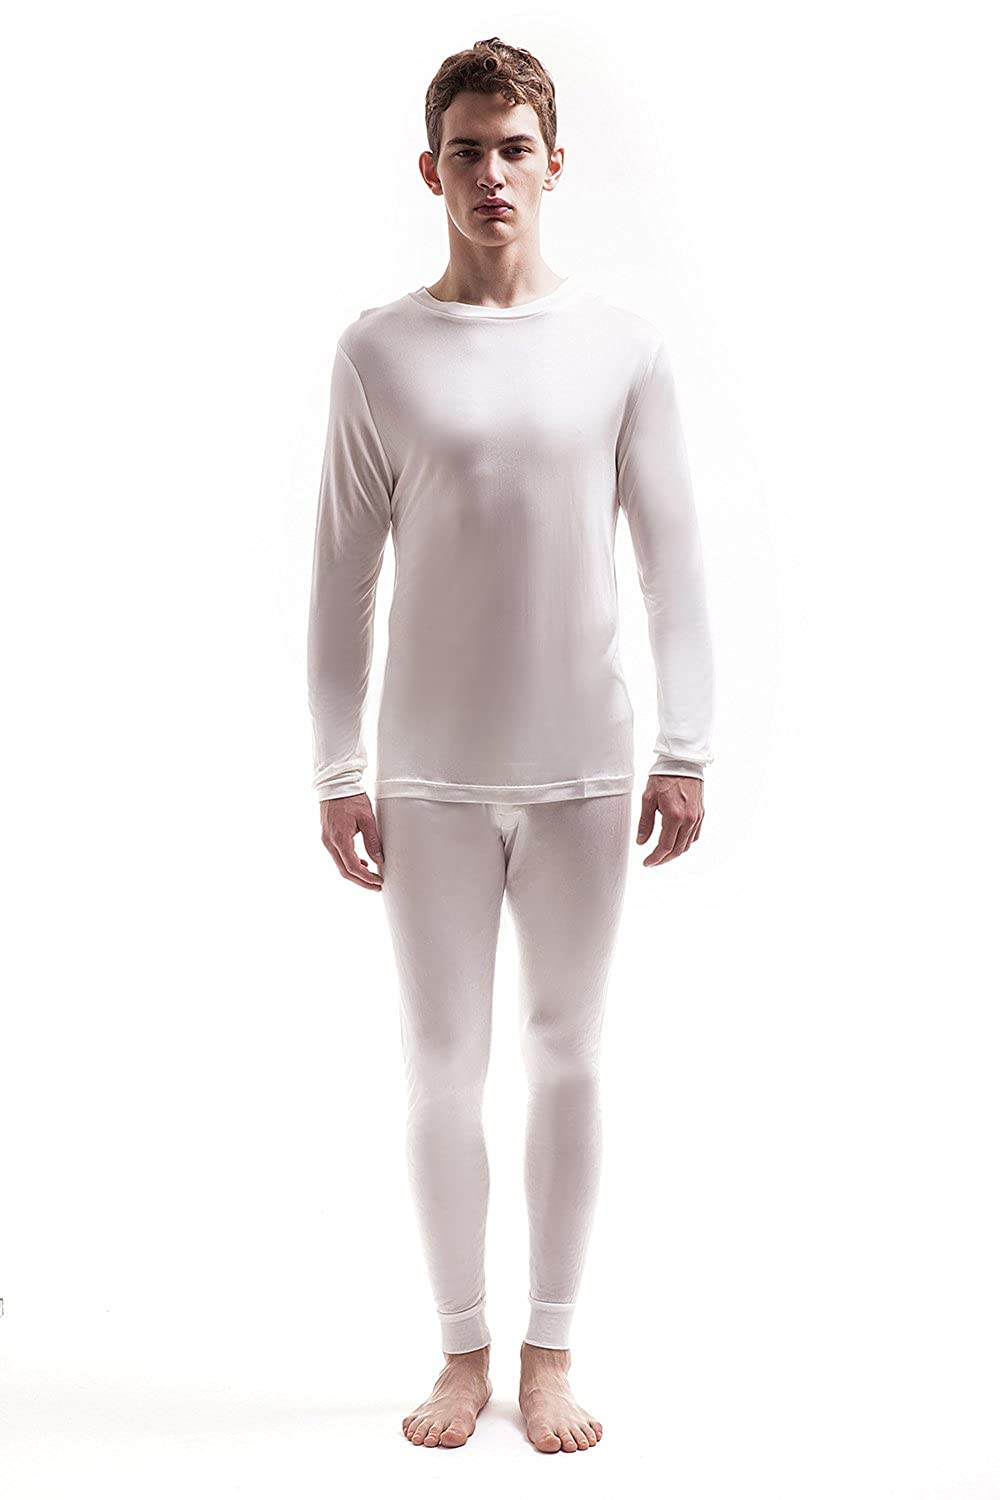 Jasmine Silk Men's Round Neck Pure Silk Thermal Long Sleeves Top Ivory